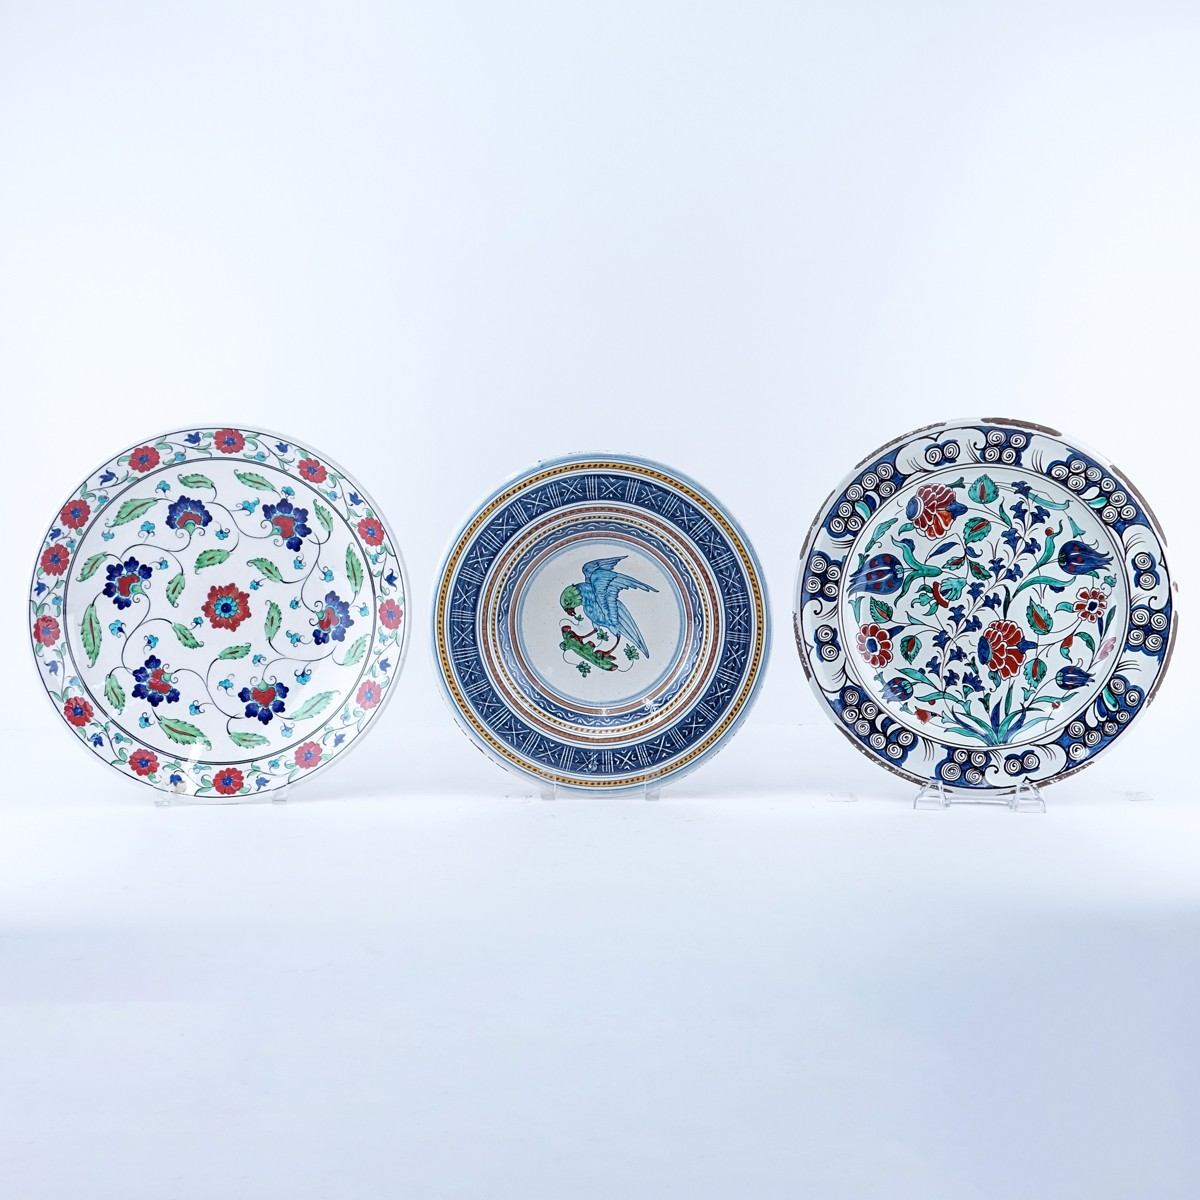 Grouping of Three (3) Vintage Faience Pottery Chargers. Two are signed, originating from Turkey and